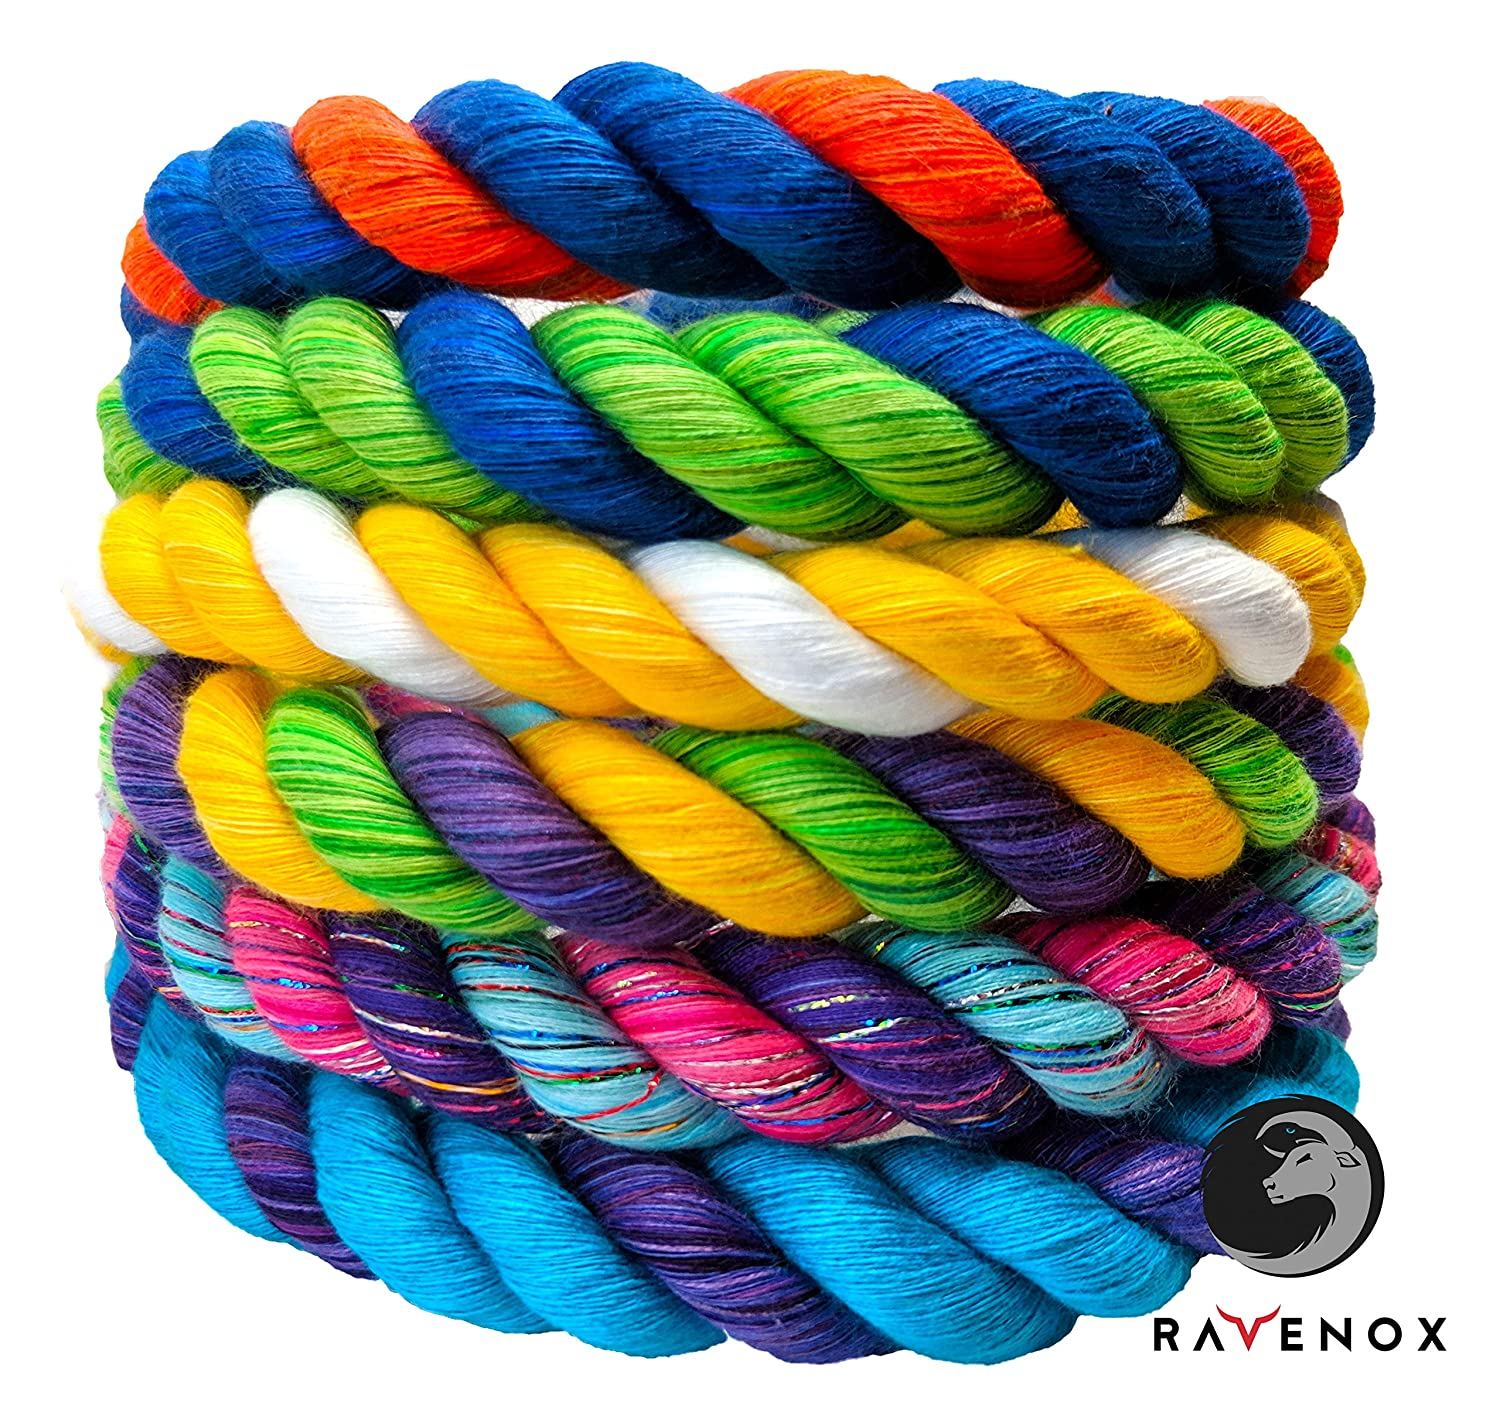 Black, Burgundy & Grey 1 2 Inch x 25 FT Ravenox Natural Twisted Cotton Rope   Made in The USA   Strong TripleStrand Cordage for Sports, Décor, Pet Toys, Crafts, Macramé & Indoor Outdoor Use  by The Foot & Diameter (Multiple colors)